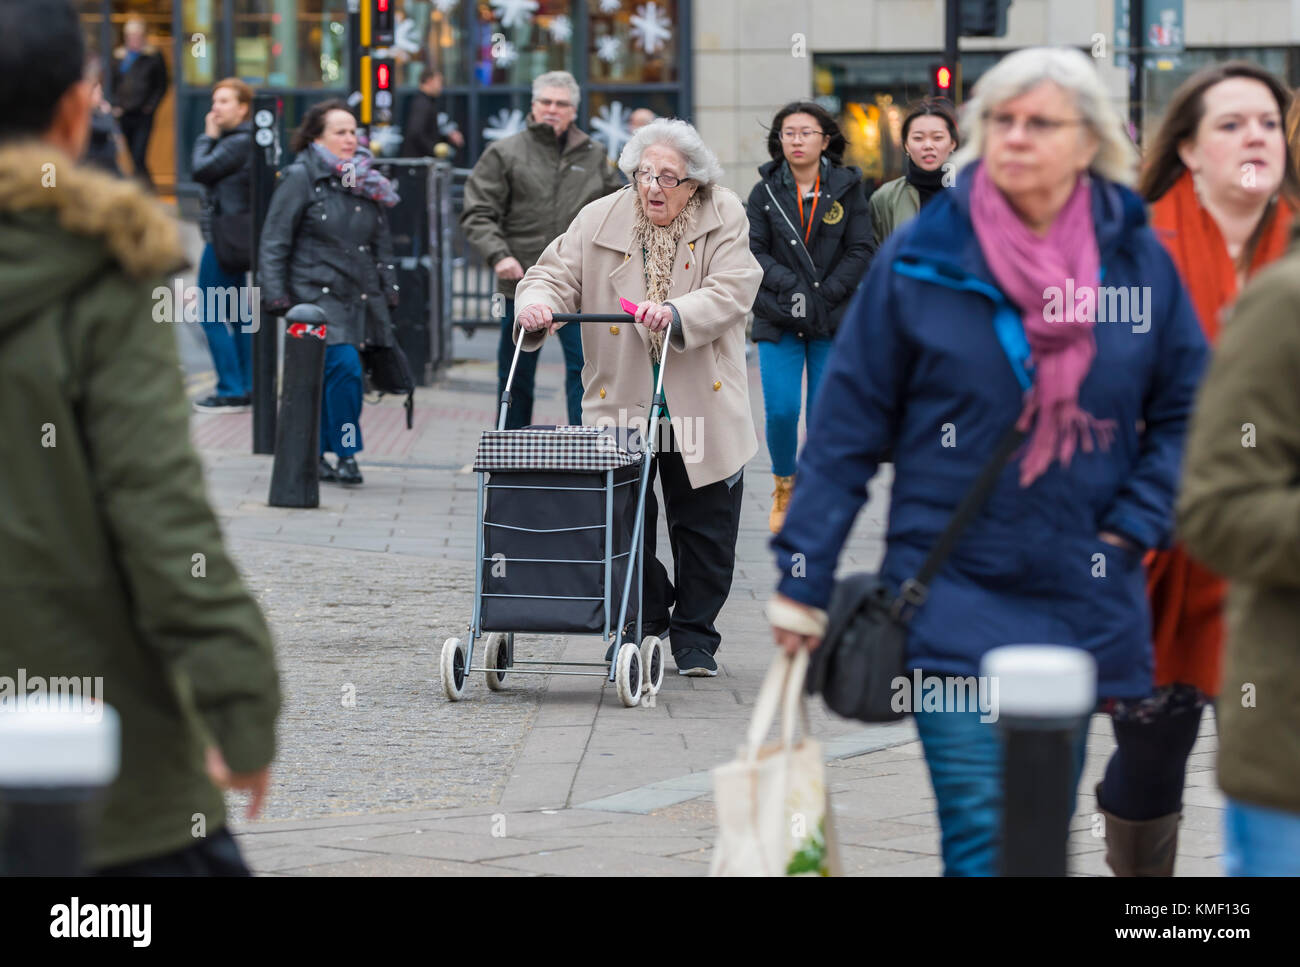 Elderly woman walking in a busy city at shops with a shopping trolley as part of a wheeled walker, in the UK. - Stock Image